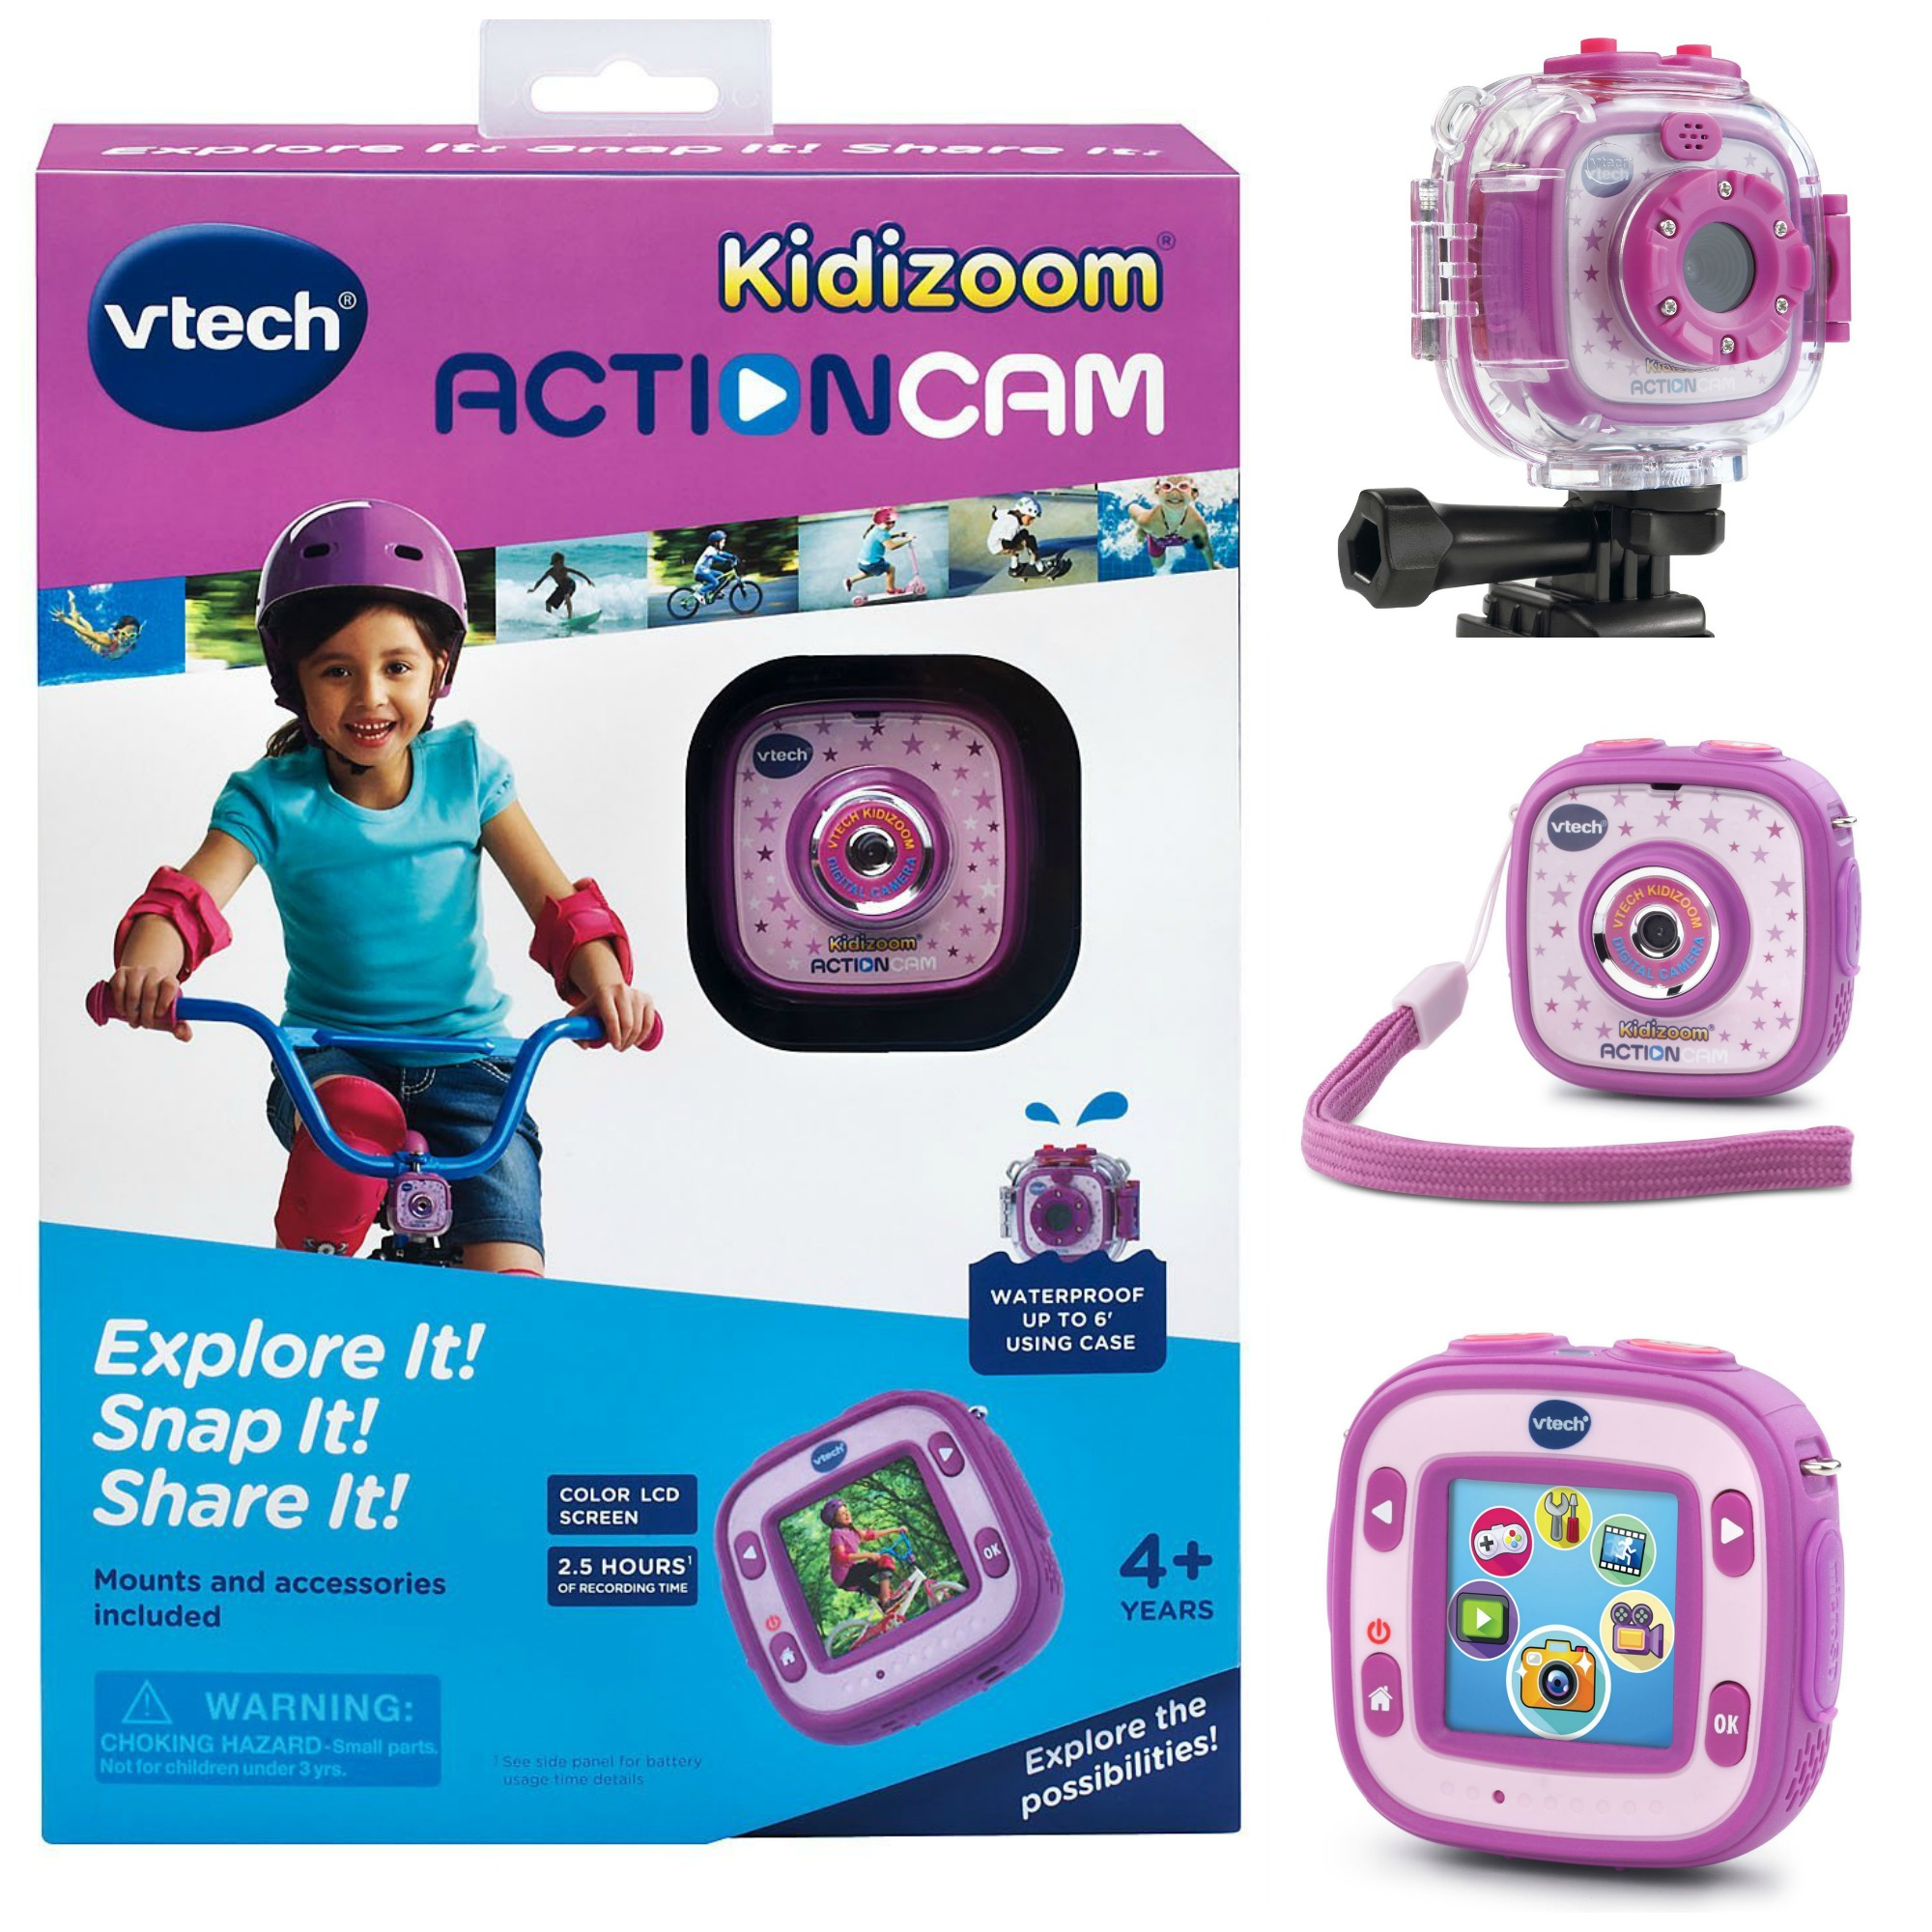 Vtech Kidizoom Kids Action Cam Livin The Mommy Life